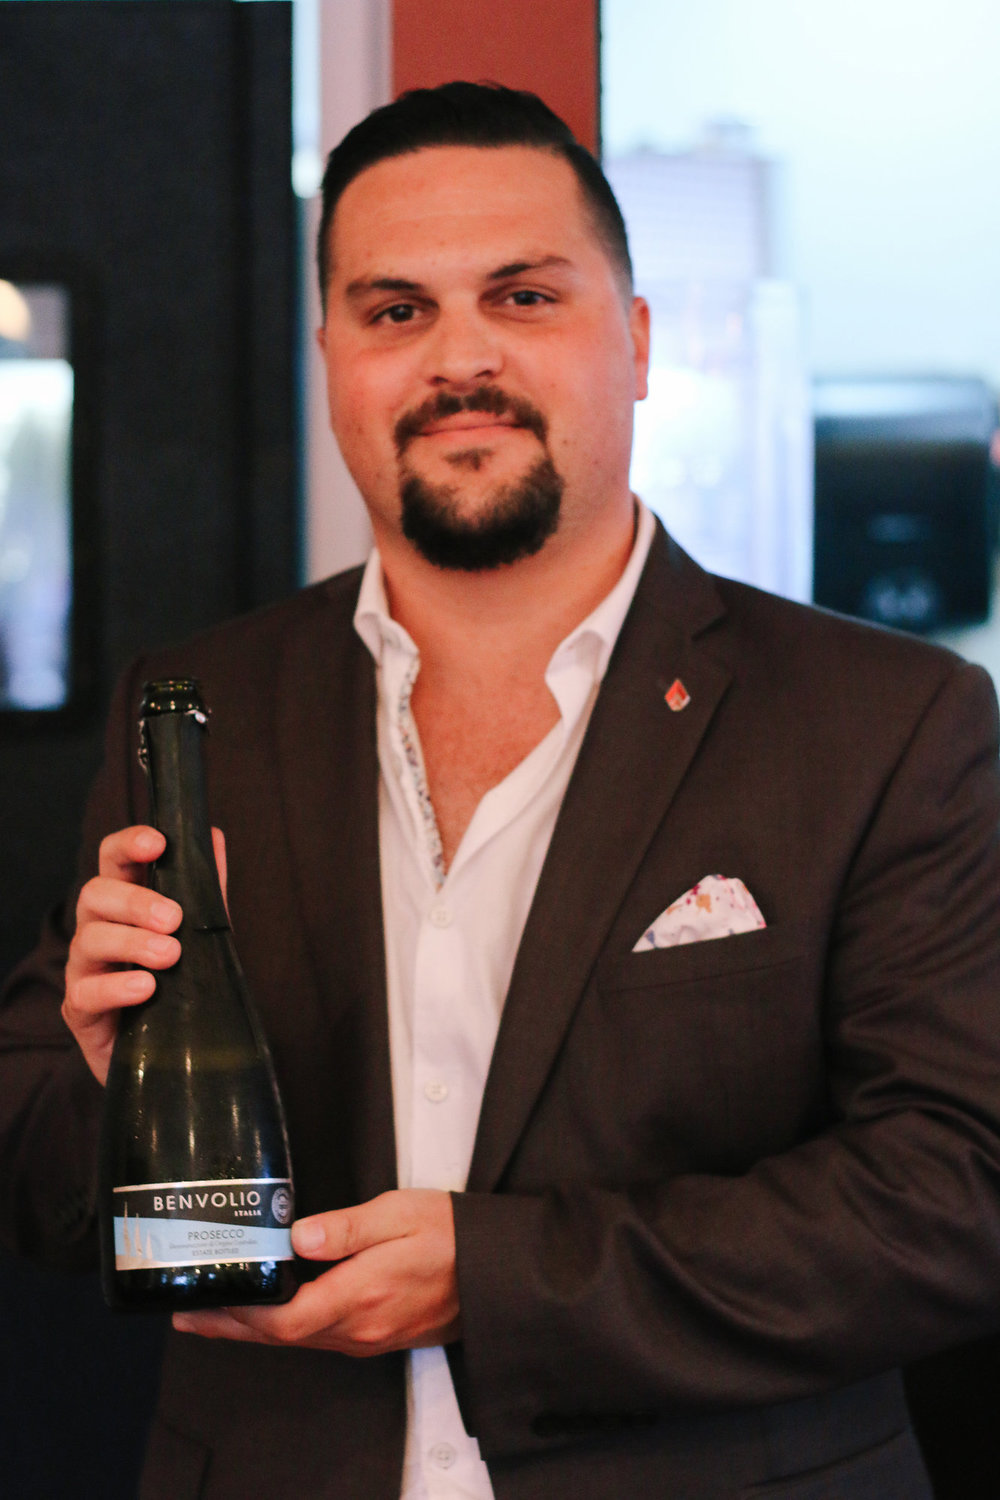 Pablo Suarez, The Wine Maverick